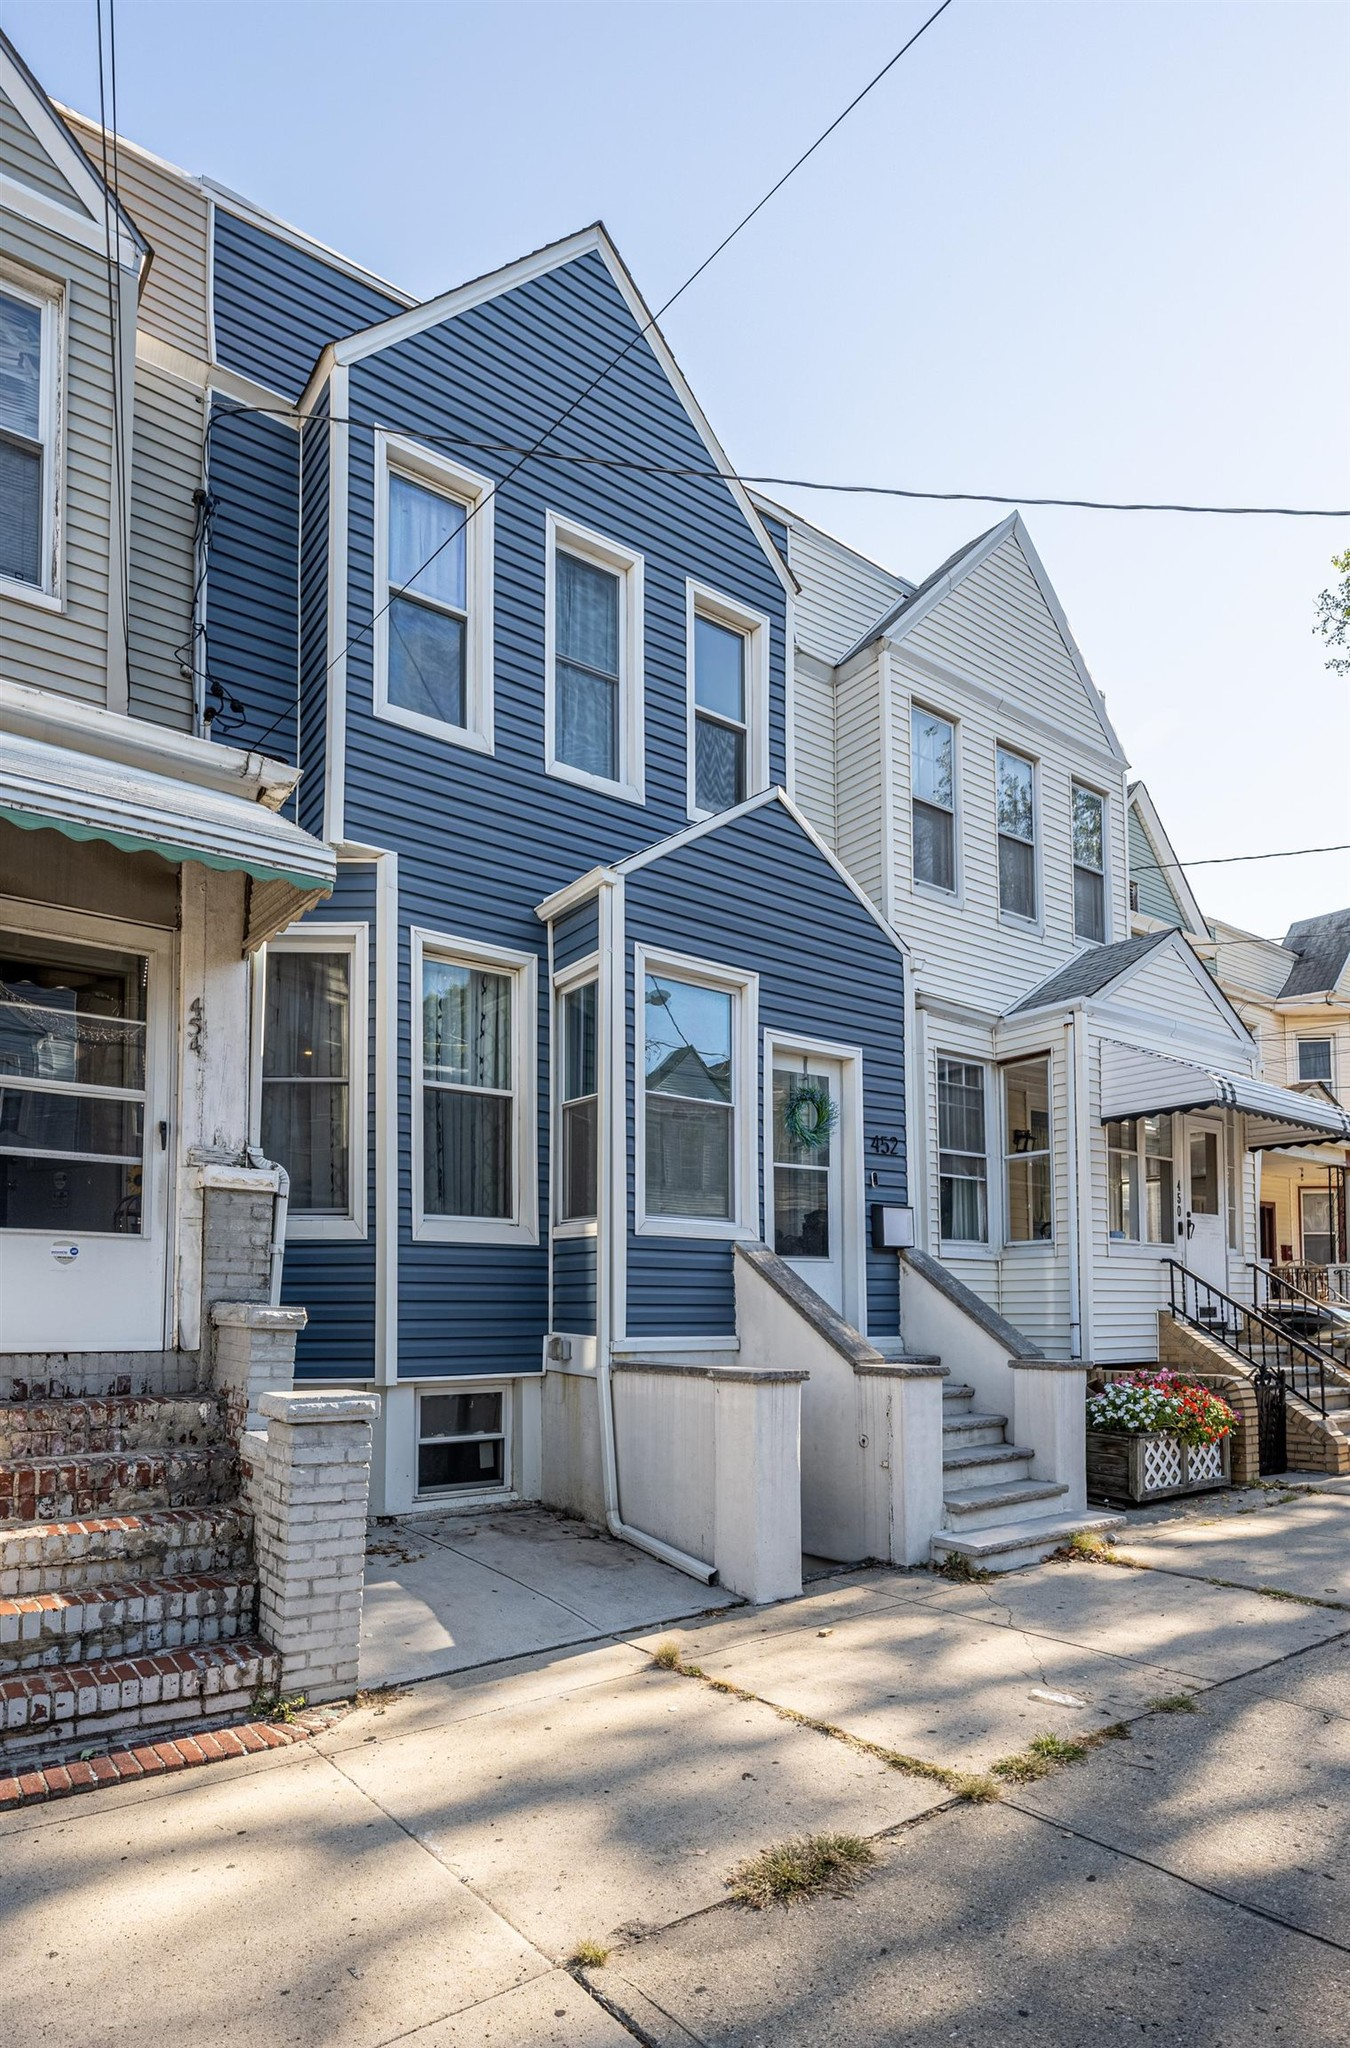 Sophisticated 3-Bedroom House In Journal Square